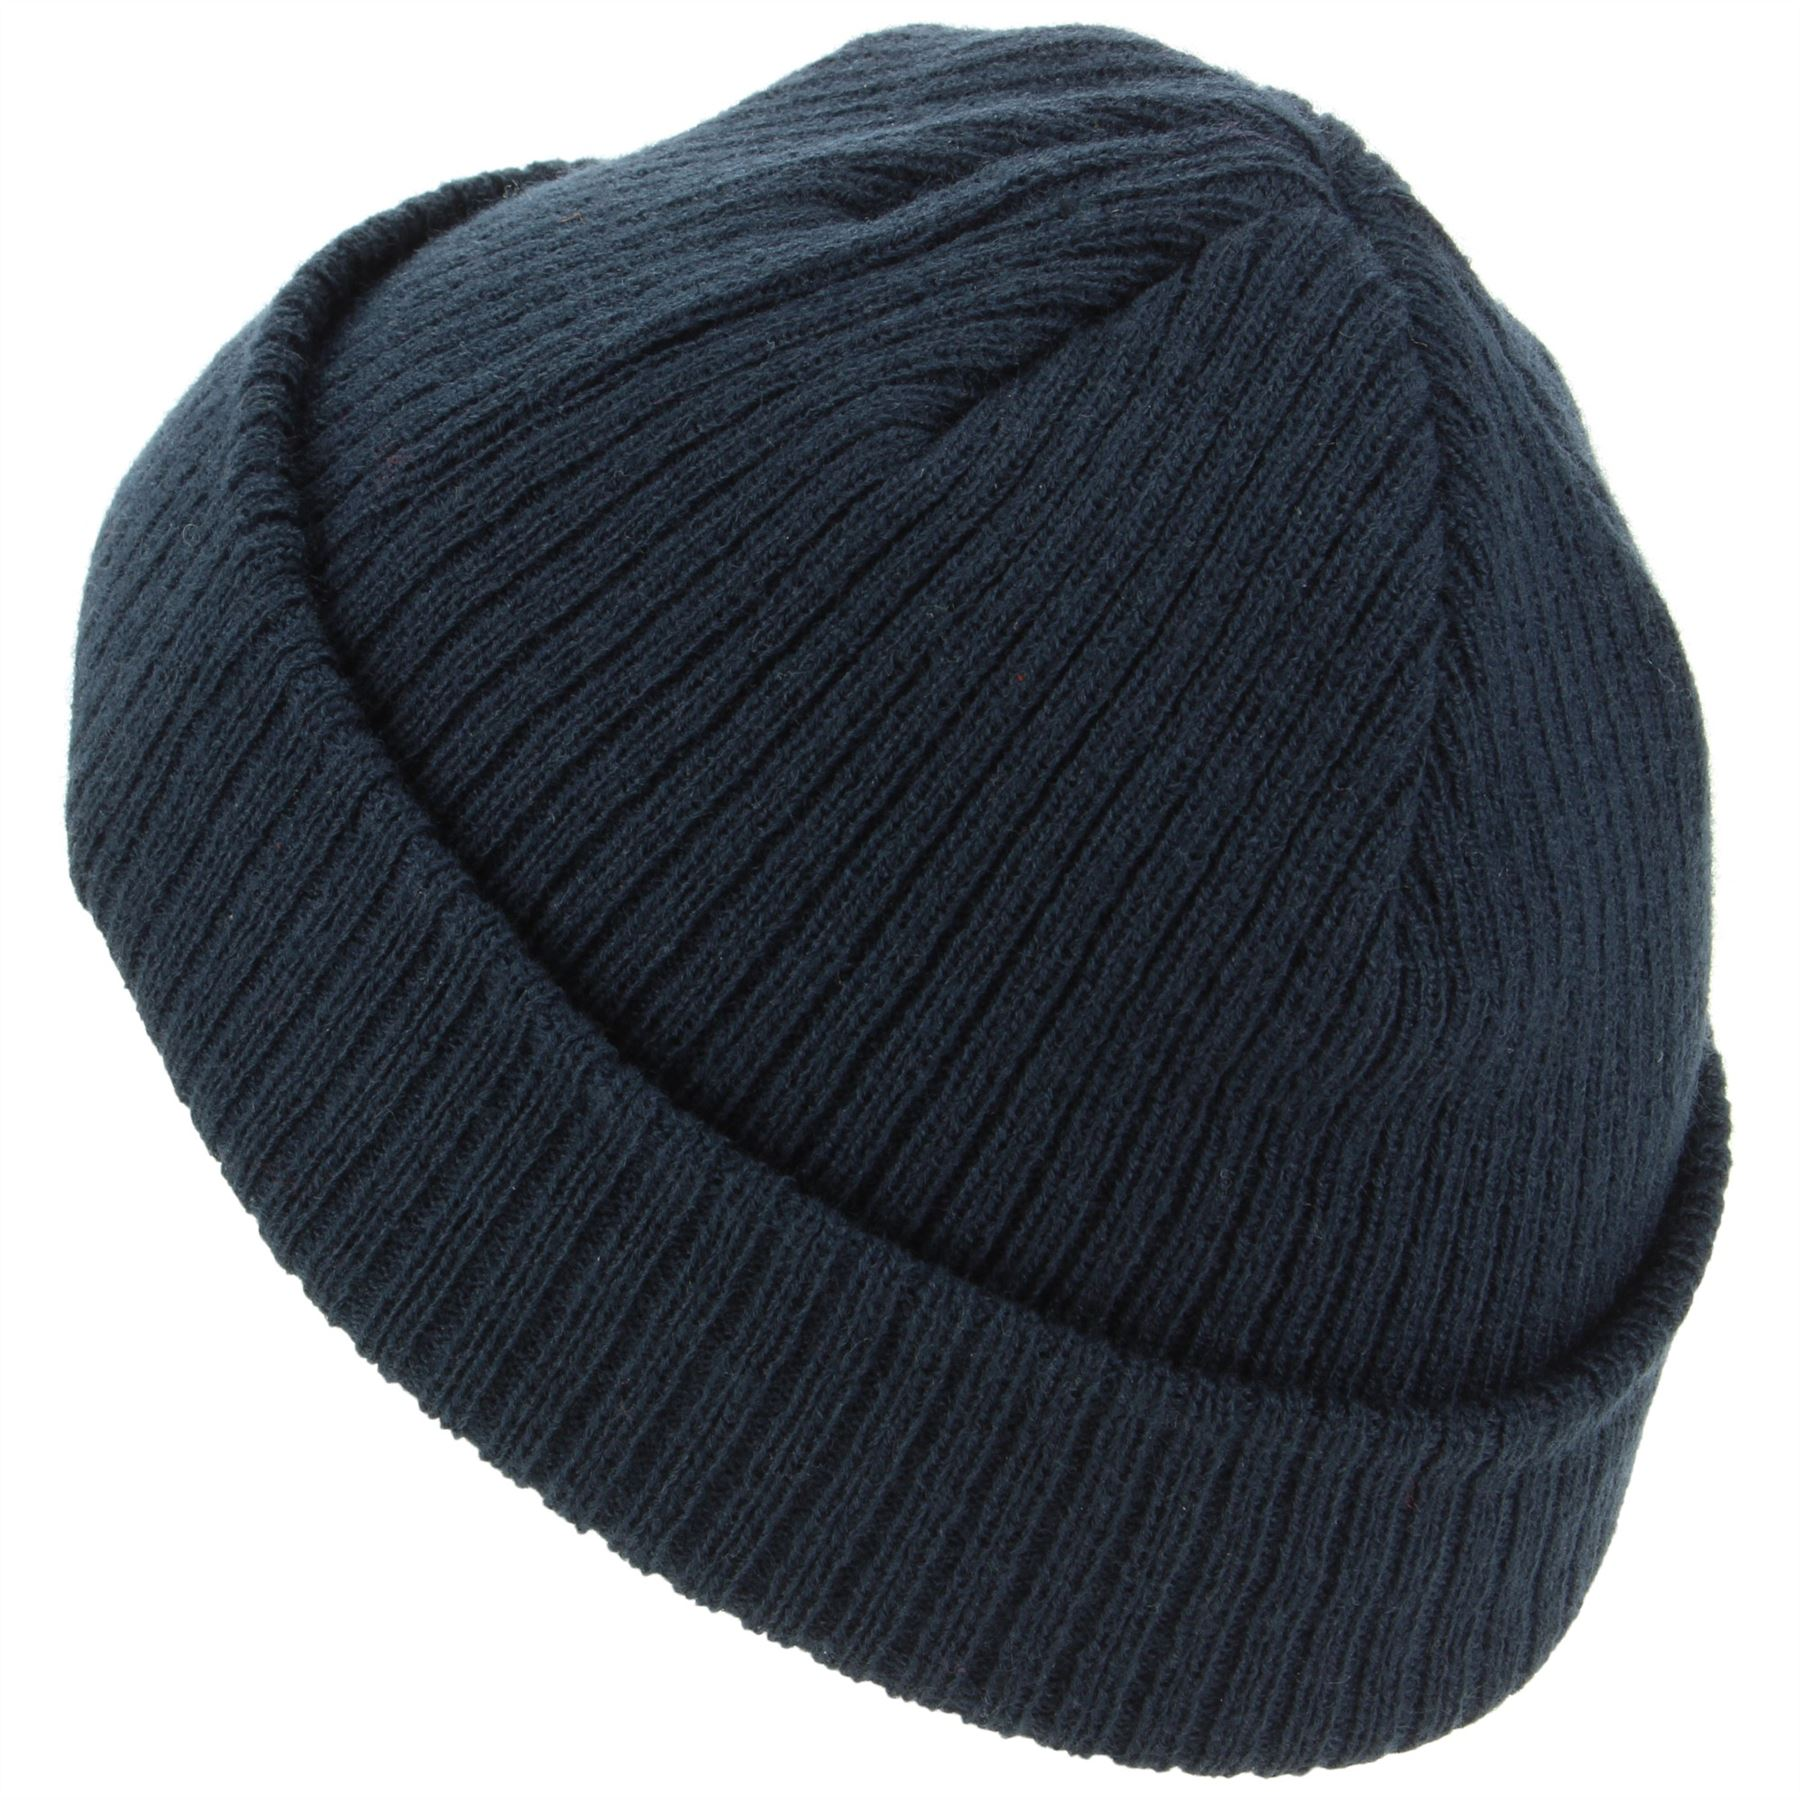 59a81495b1c Mini Beanie Hat Fishermans Cap Mens Womens Black Maroon Blue Winter ...